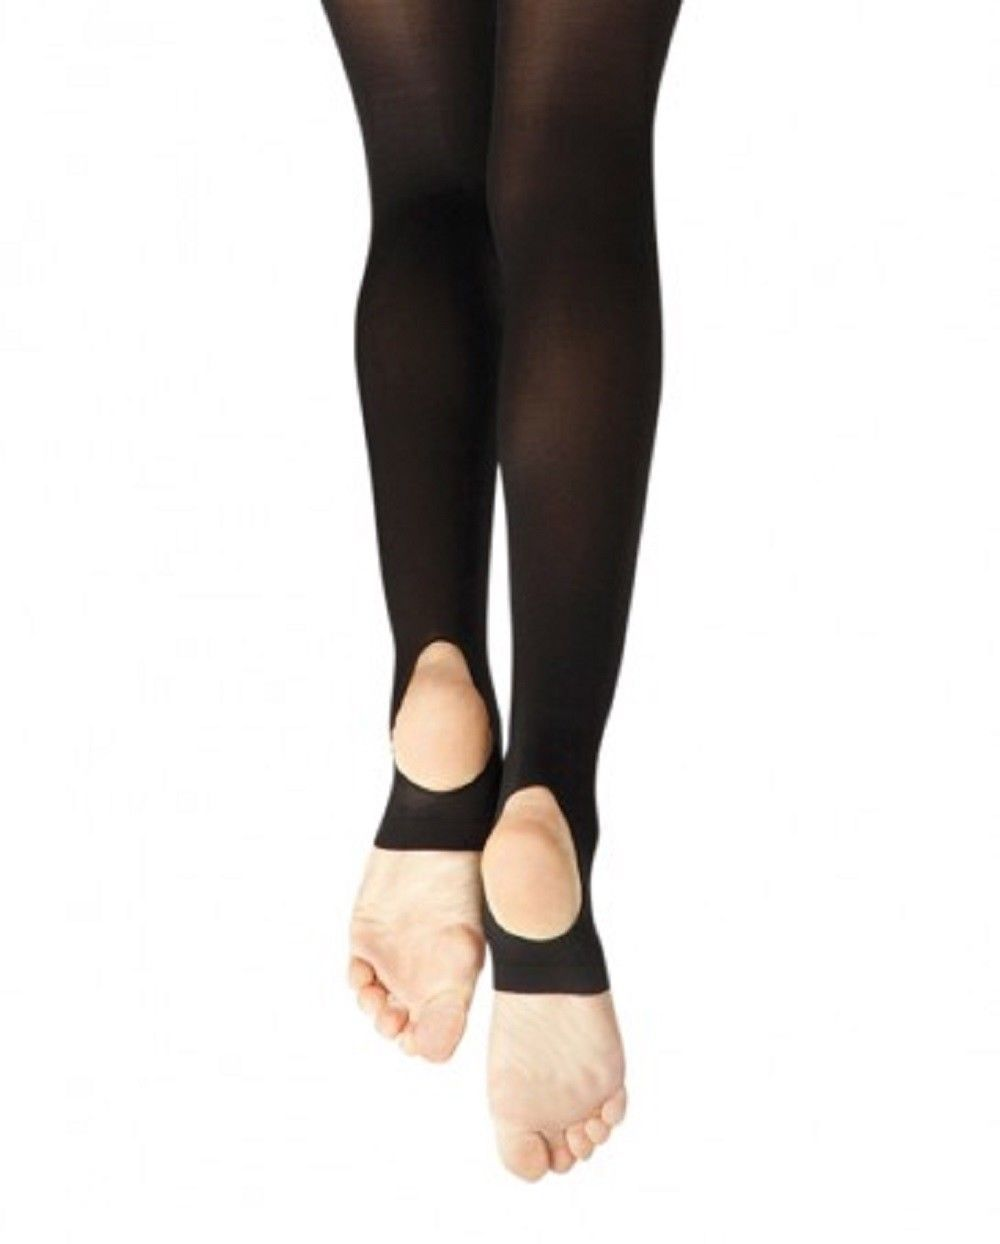 b9b94025bf625 Leggings and Tights 152353: Capezio Girls Hold And Stretch Stirrup Tight -  N145c ->